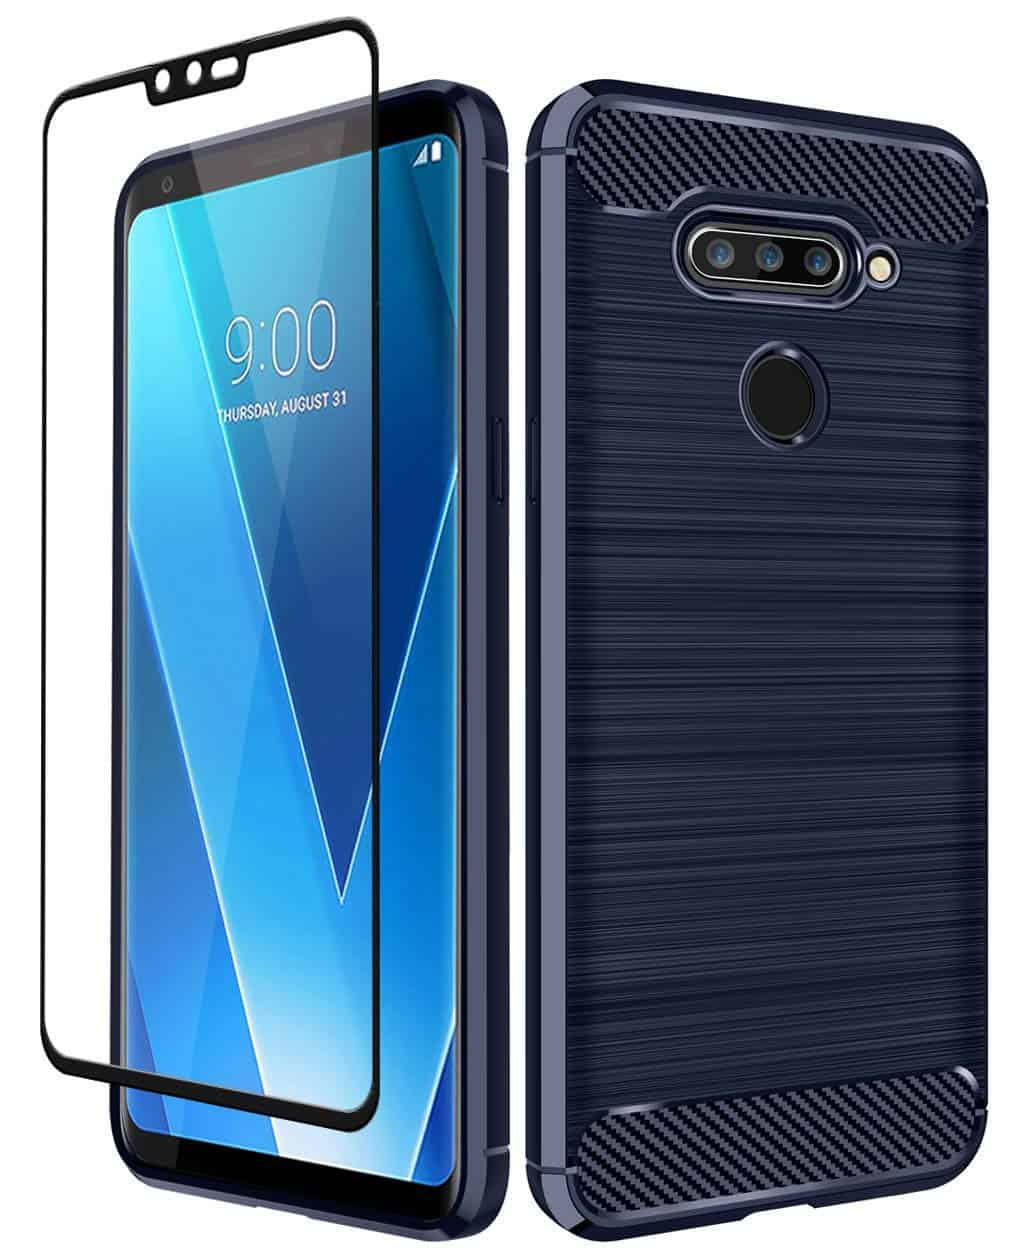 Aoways Tempered Glass Screen Protector & Carbon Fiber Soft TPU Case - (Amazon)